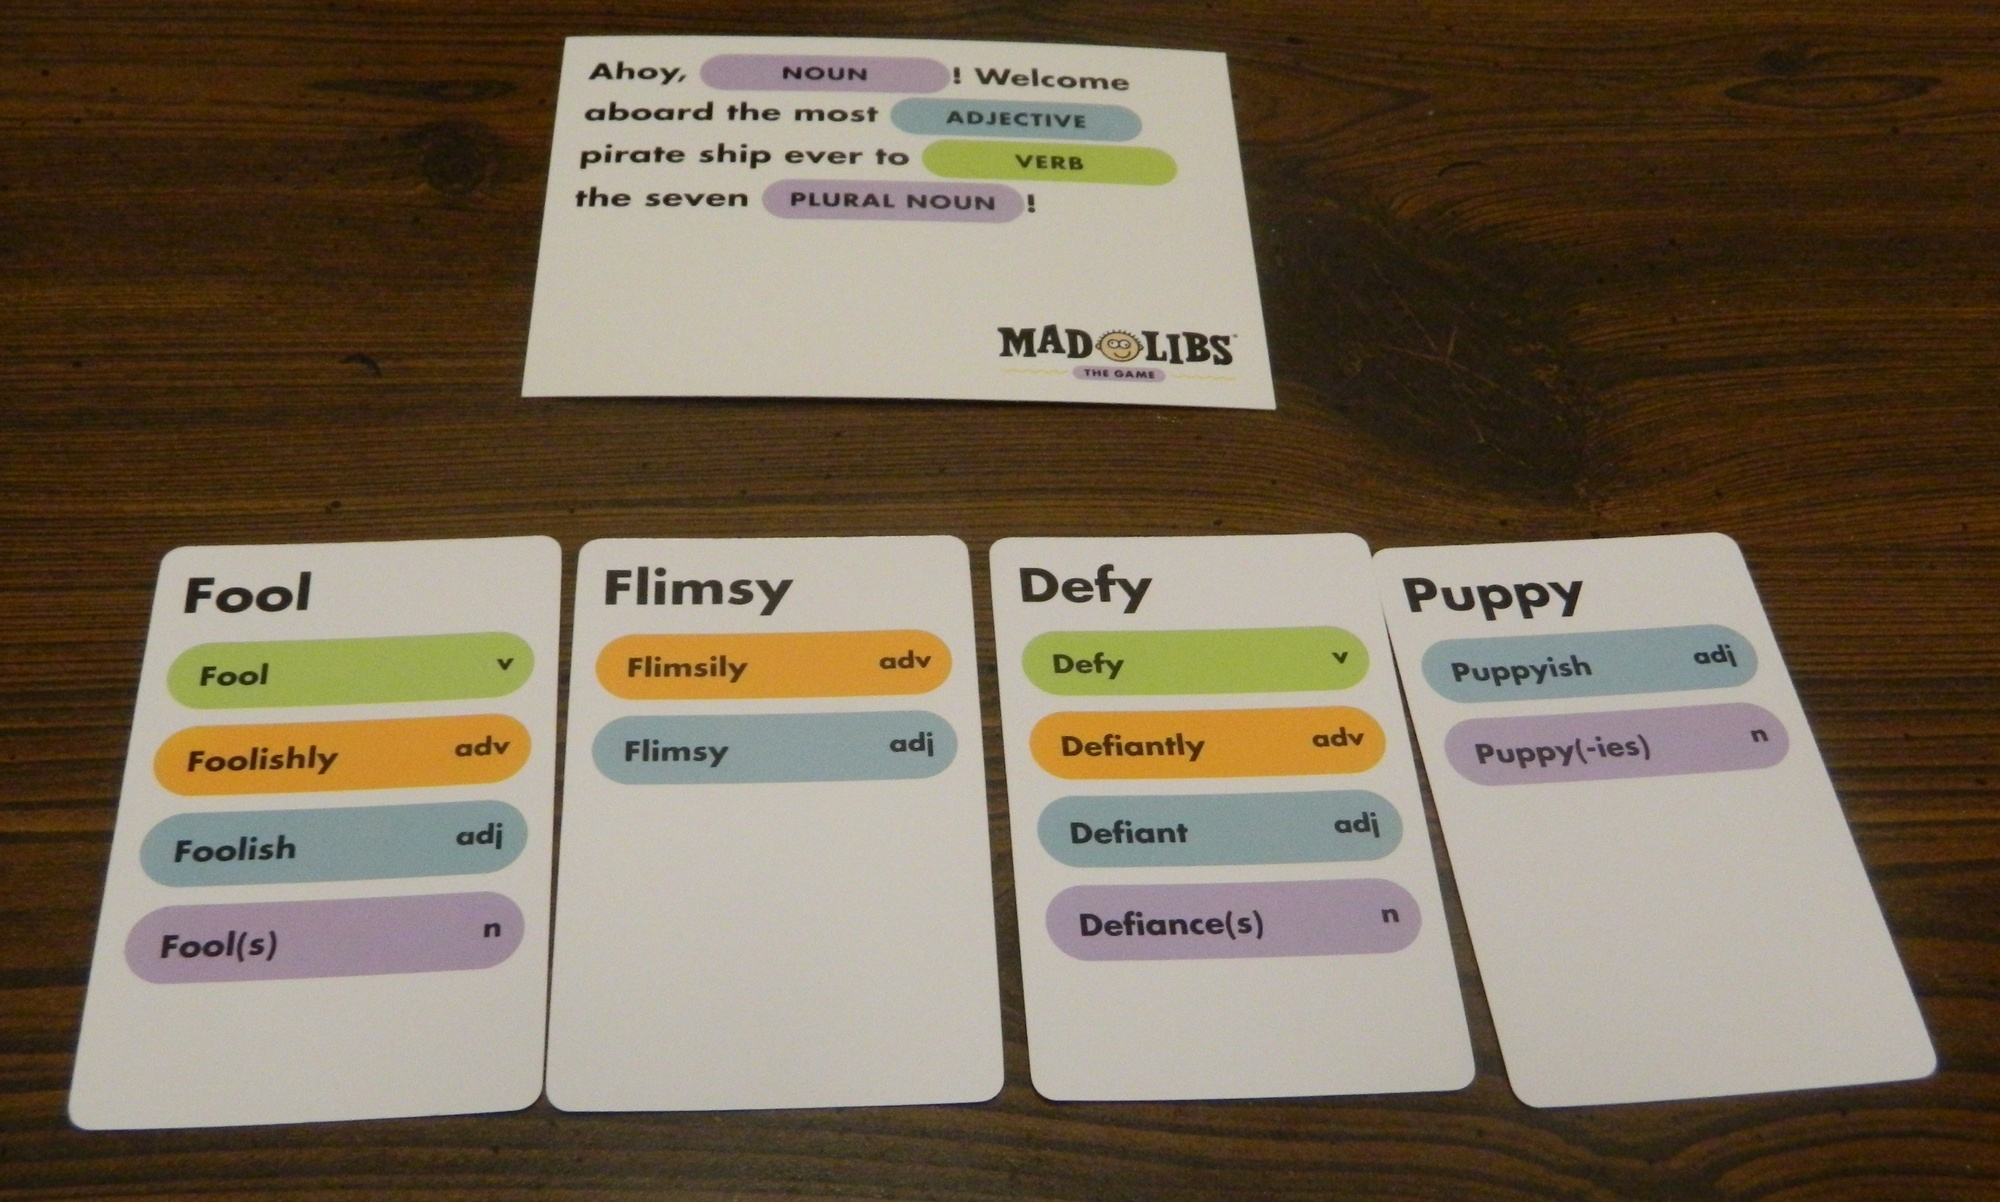 Mad Libs The Game Card Game Review and Rules | Geeky Hobbies